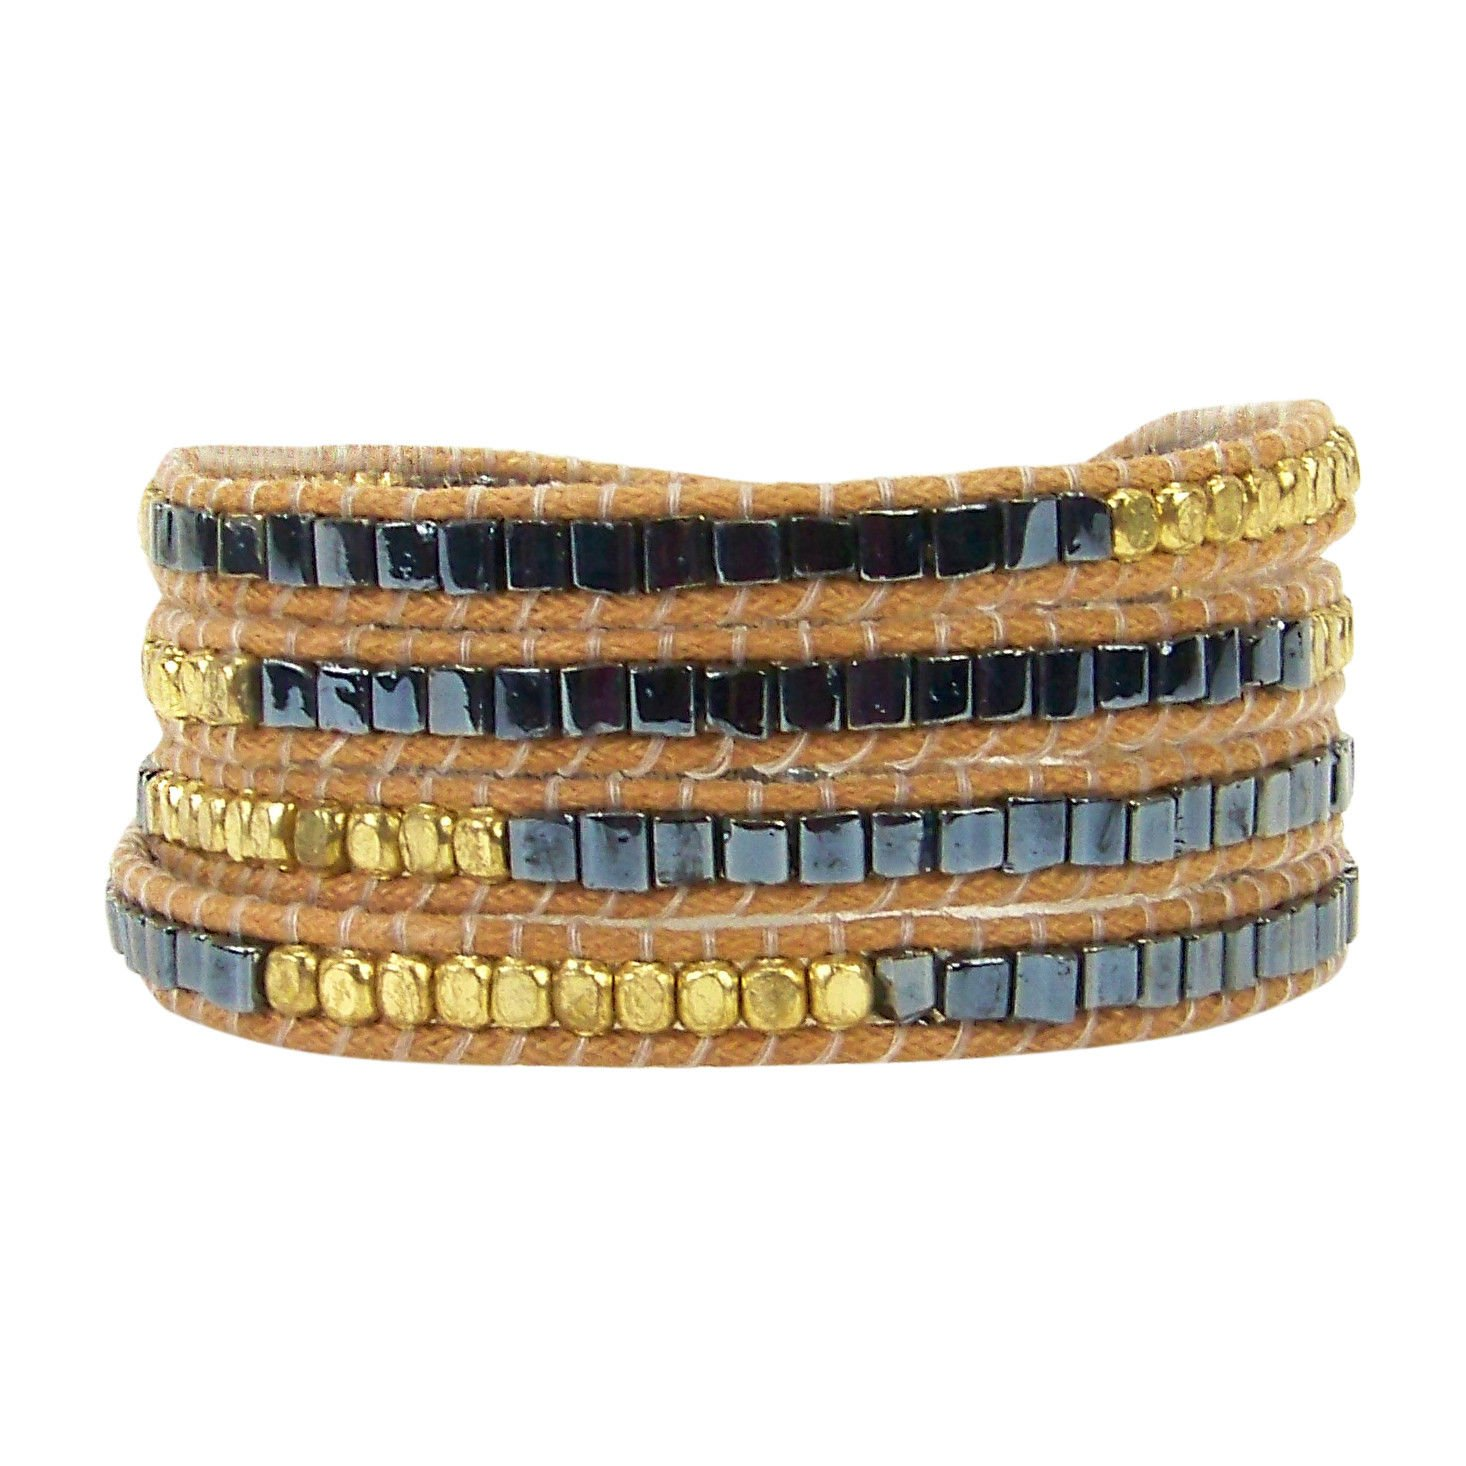 Pink House Multi Wrap Bracelet in Golds Silvers and Gunmetal